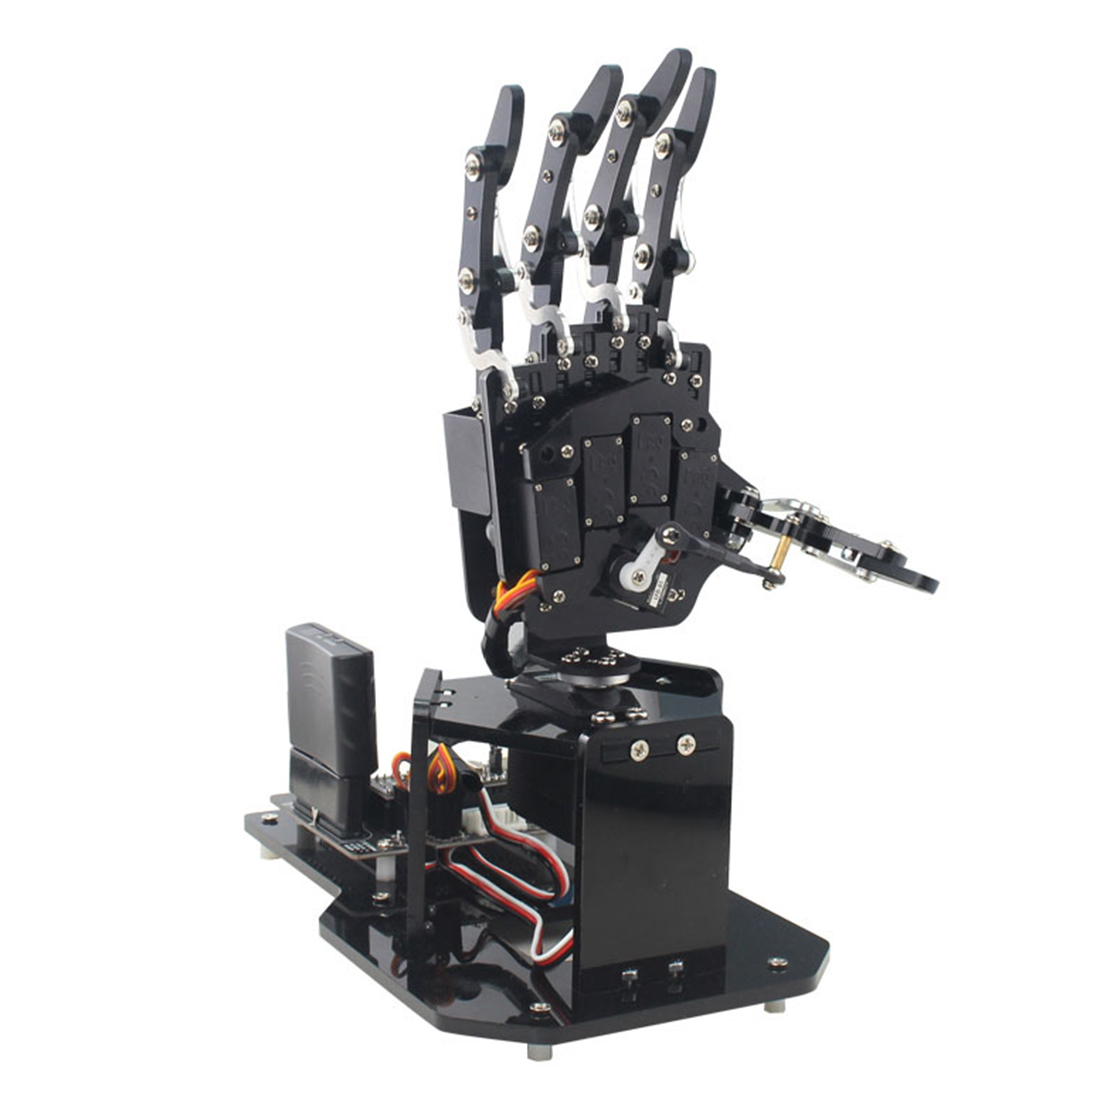 Open Source Robot Palm Bionic Mechanical Palm Sense Maker For Arduino Brain-Training Toy Children Educational Toys Birthday Gift